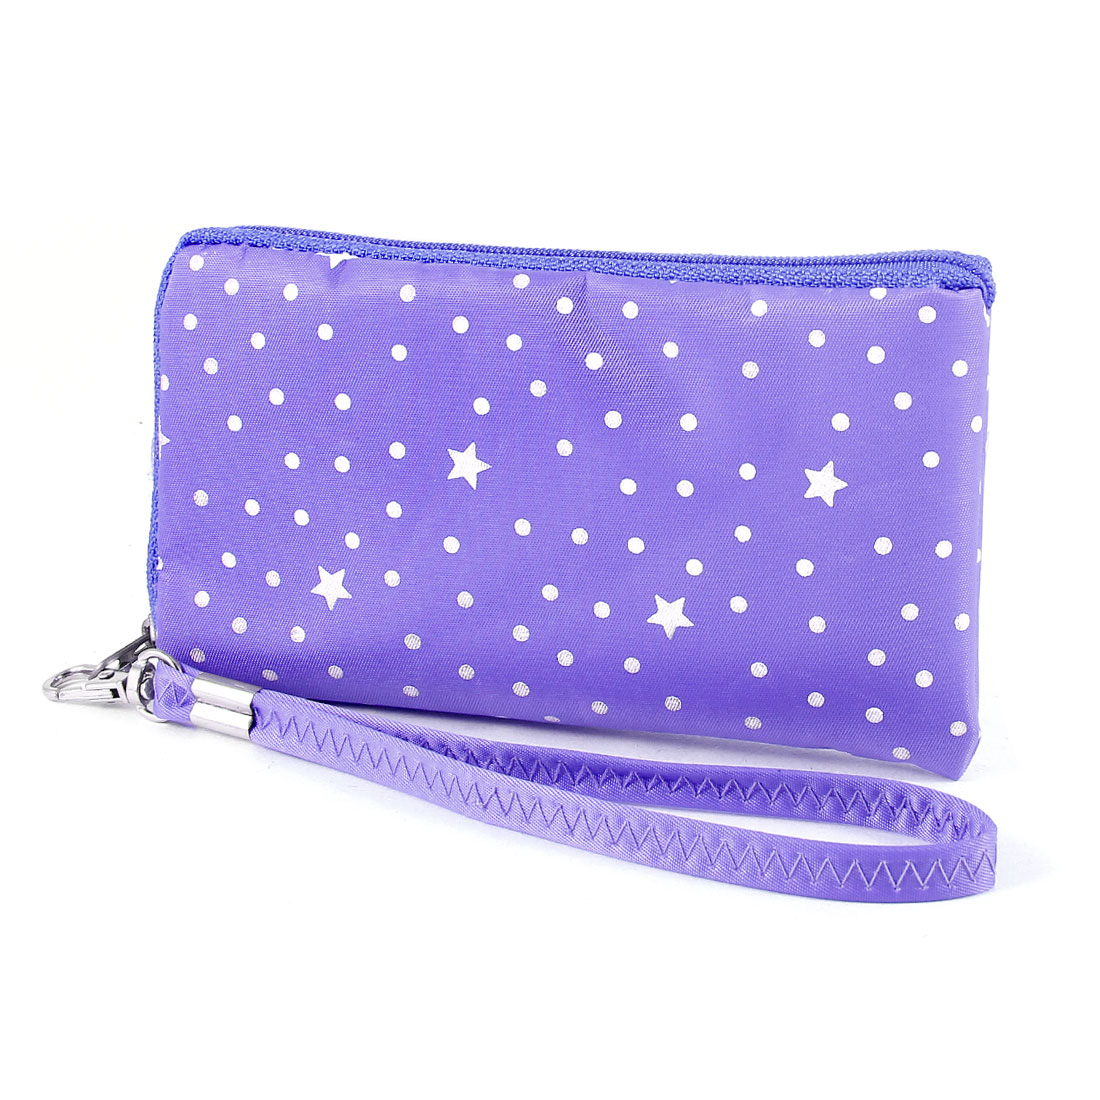 Dots Design Zip Keys Coins Purse Phone Bag w Hand Strap Purple